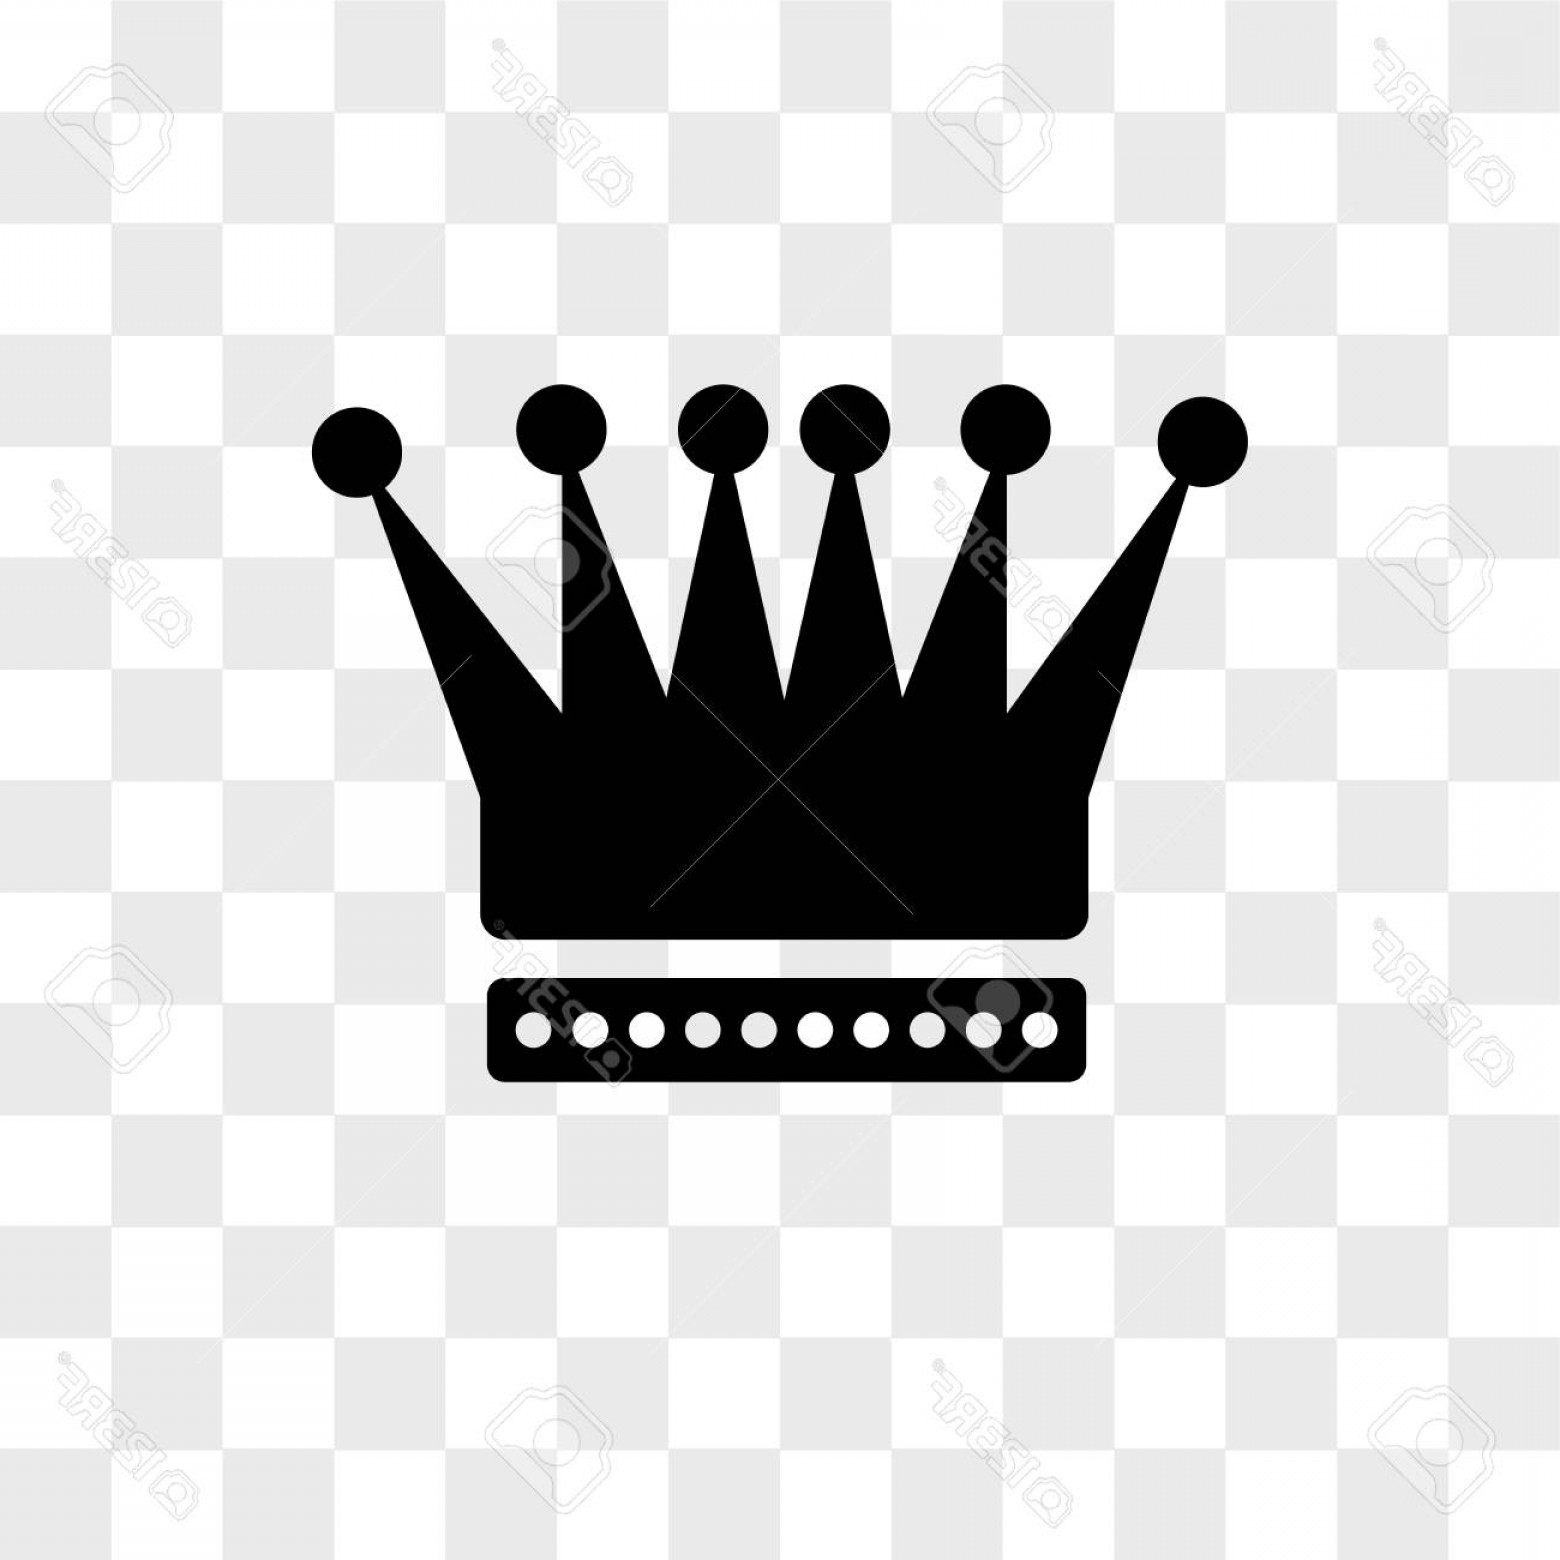 Transparent Queen Crown Vector: Photoking Crown Vector Icon Isolated On Transparent Background King Crown Logo Concept